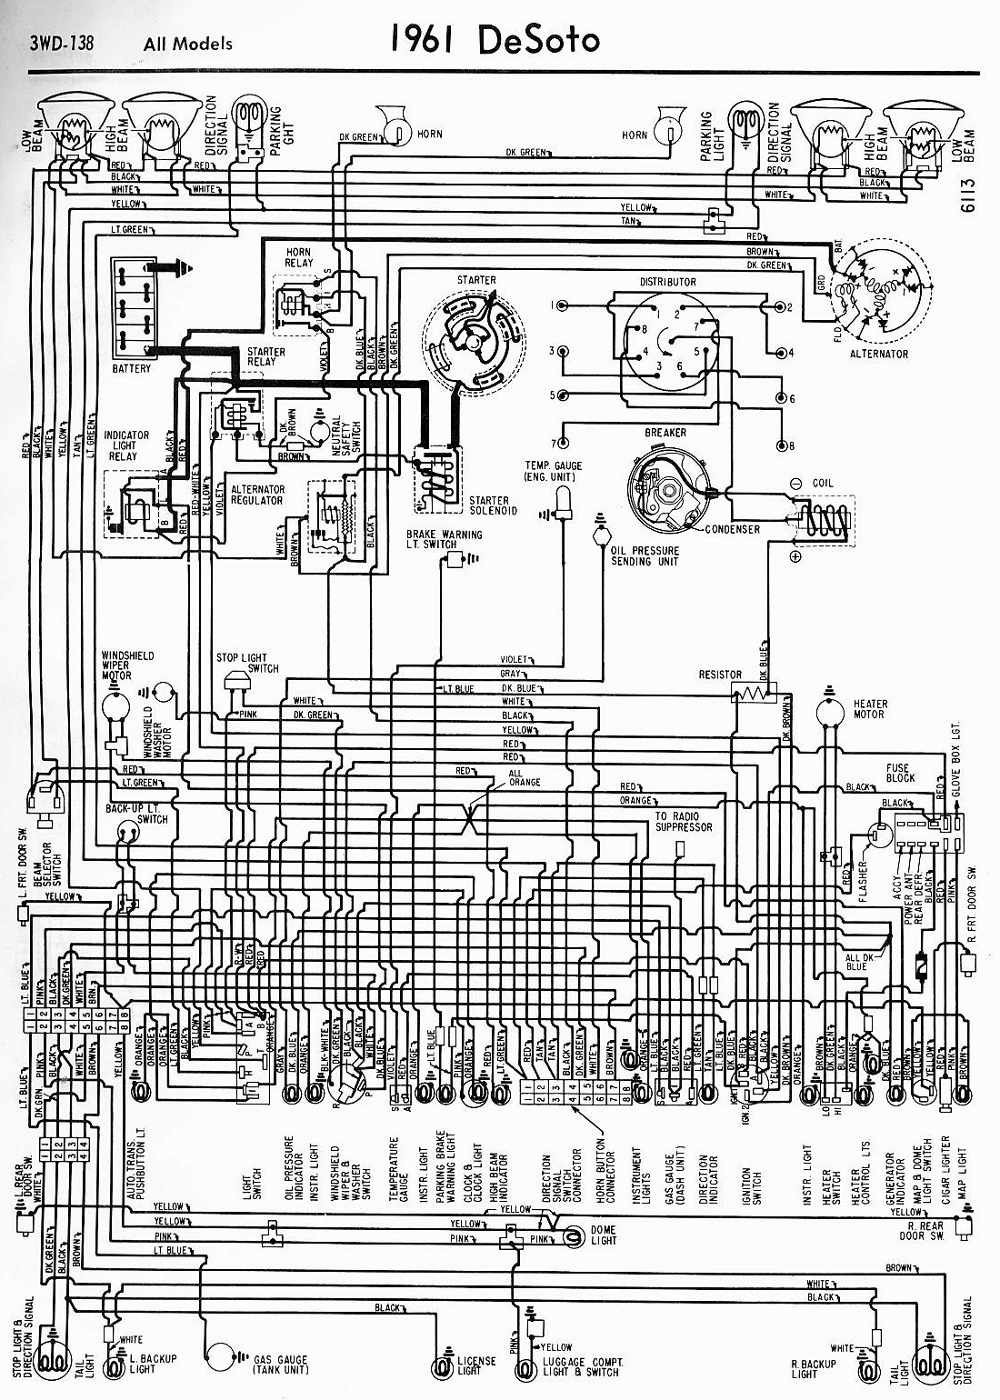 hight resolution of 1941 desoto wiring diagrams 27 wiring diagram images 1941 chevrolet wiring diagram 1941 chevrolet wiring diagram